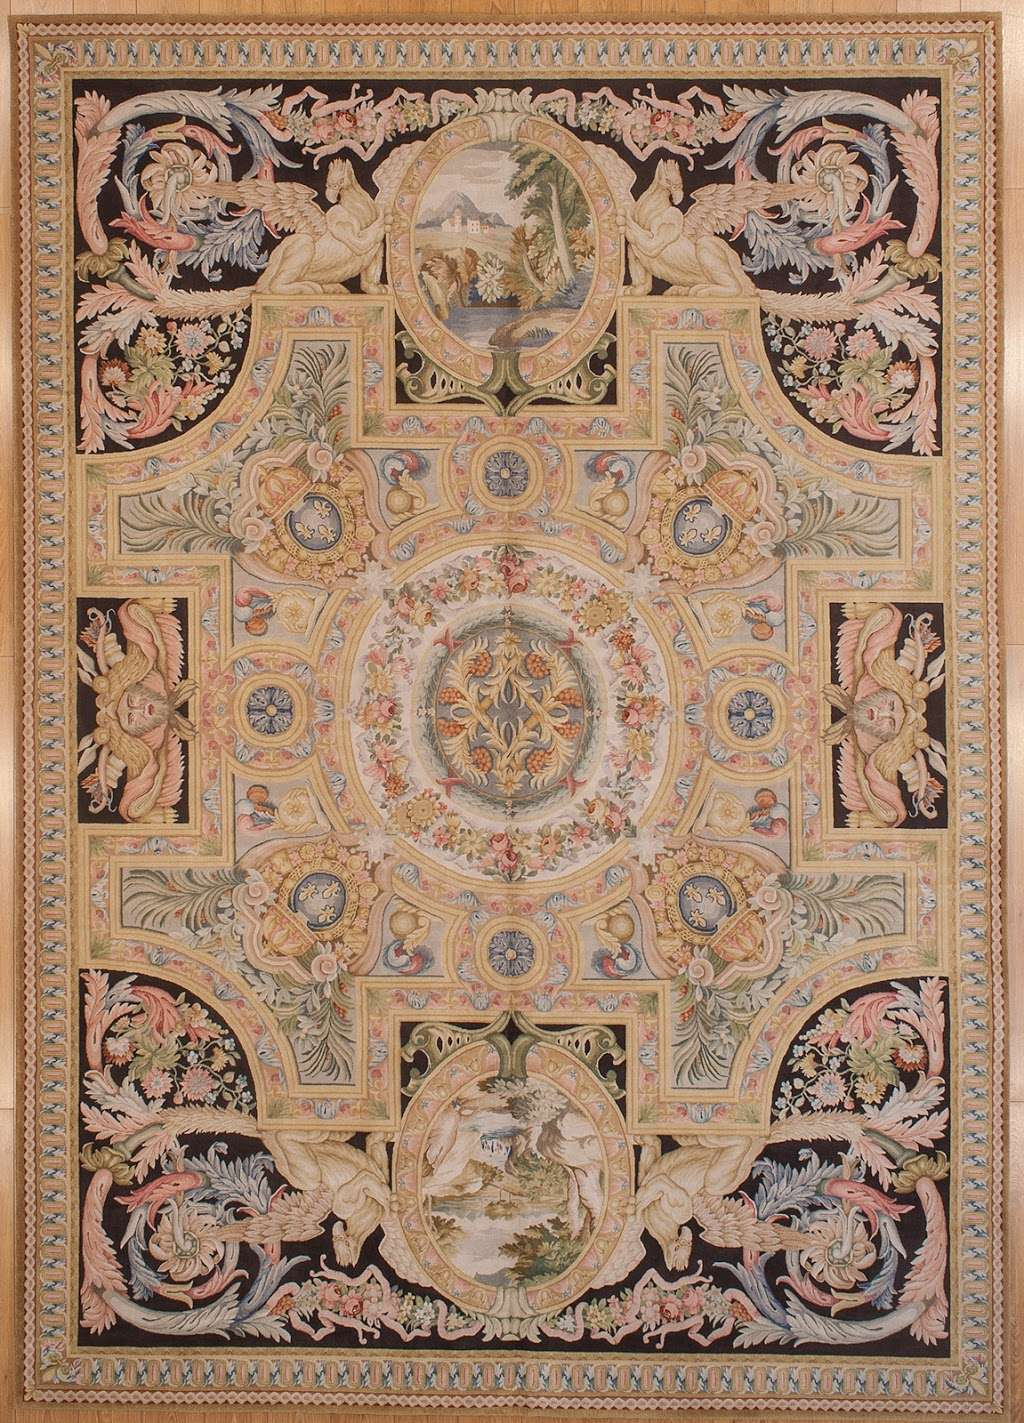 ModRen Rugs Inc Aubusson Savonnerie Tapestry - home goods store  | Photo 3 of 7 | Address: 505 Windsor Dr, Secaucus, NJ 07094, USA | Phone: (201) 866-0909